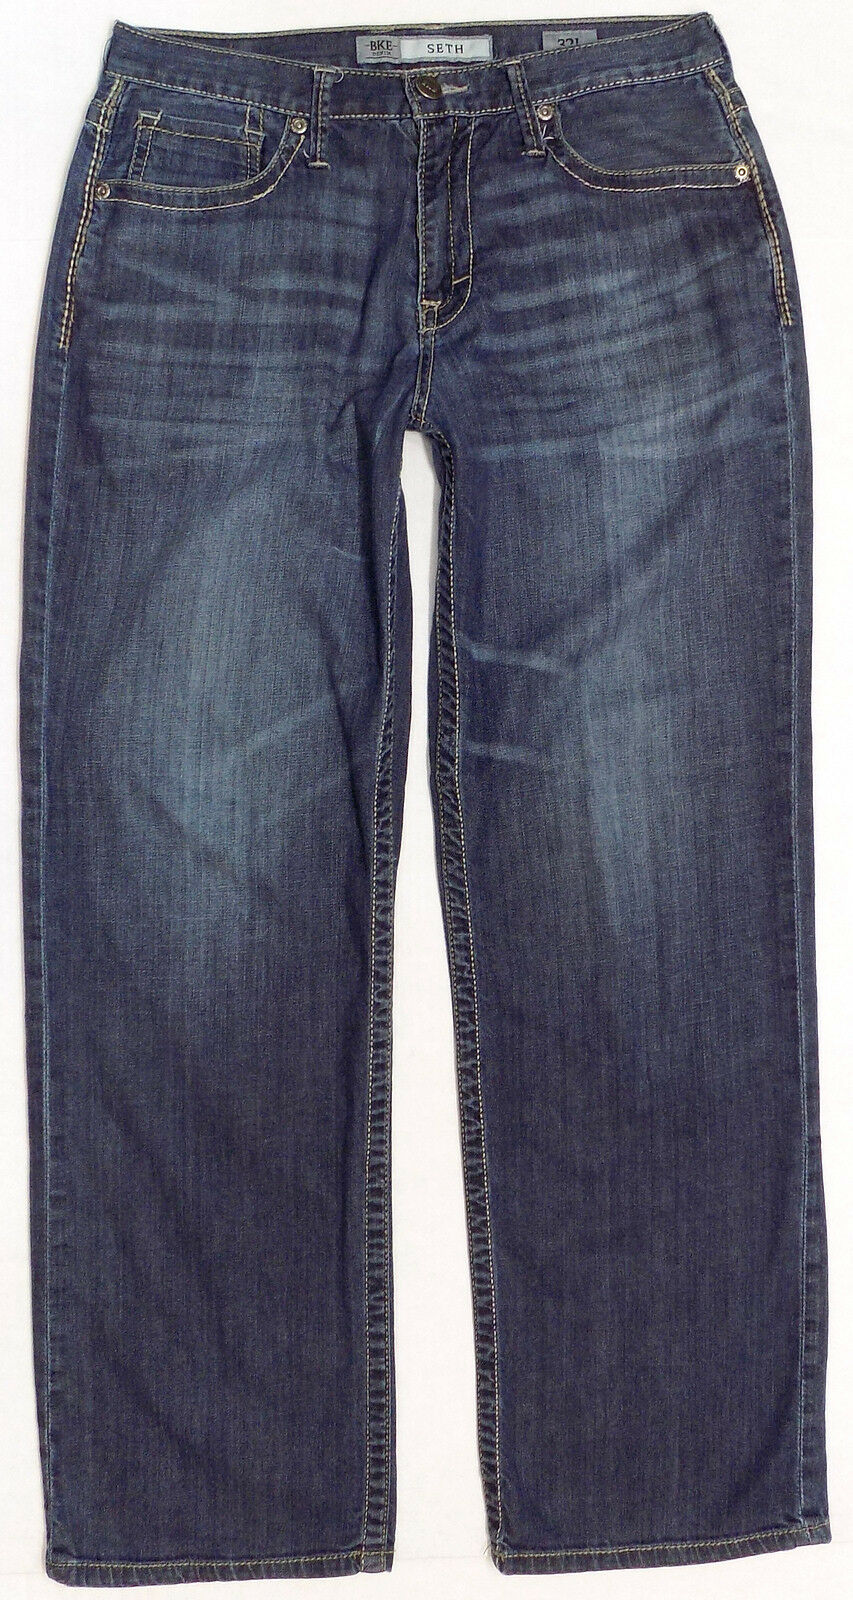 BKE Denim Seth Loose Fit Straight Leg Jeans Mens Size 32 x 32